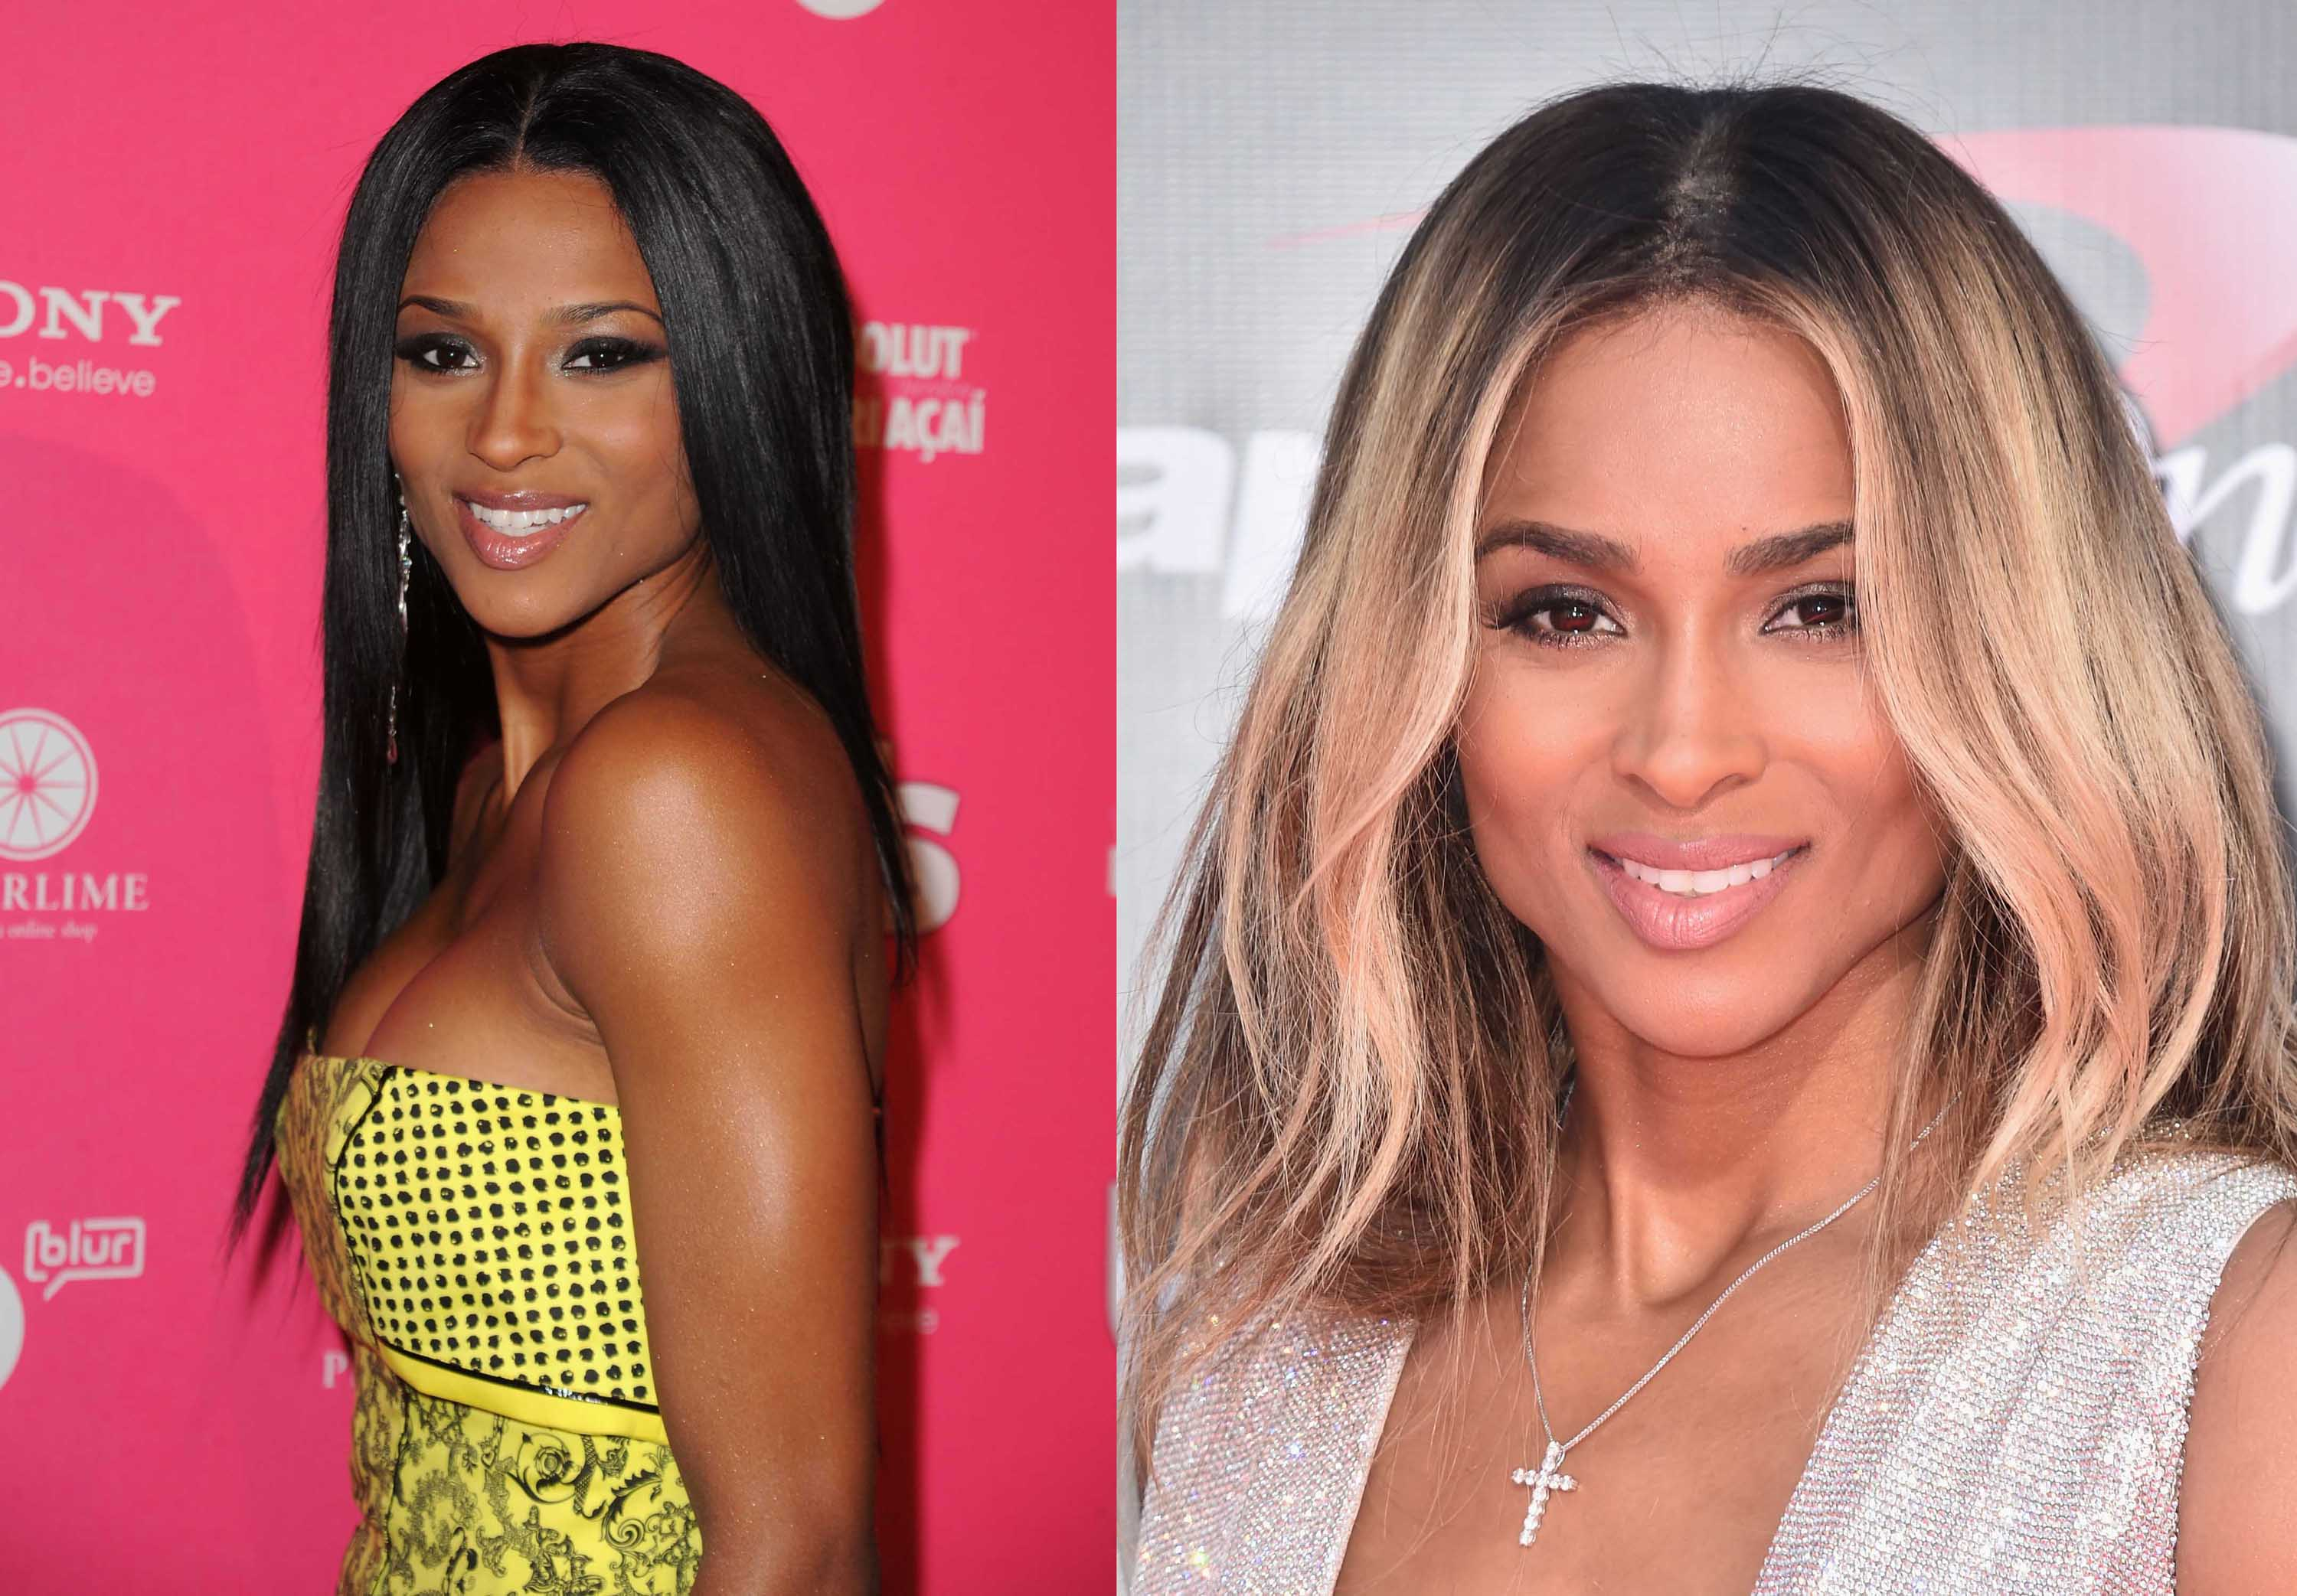 Black celebrity hair: All Things Hair - IMAGE - Ciara long hair Black History Month